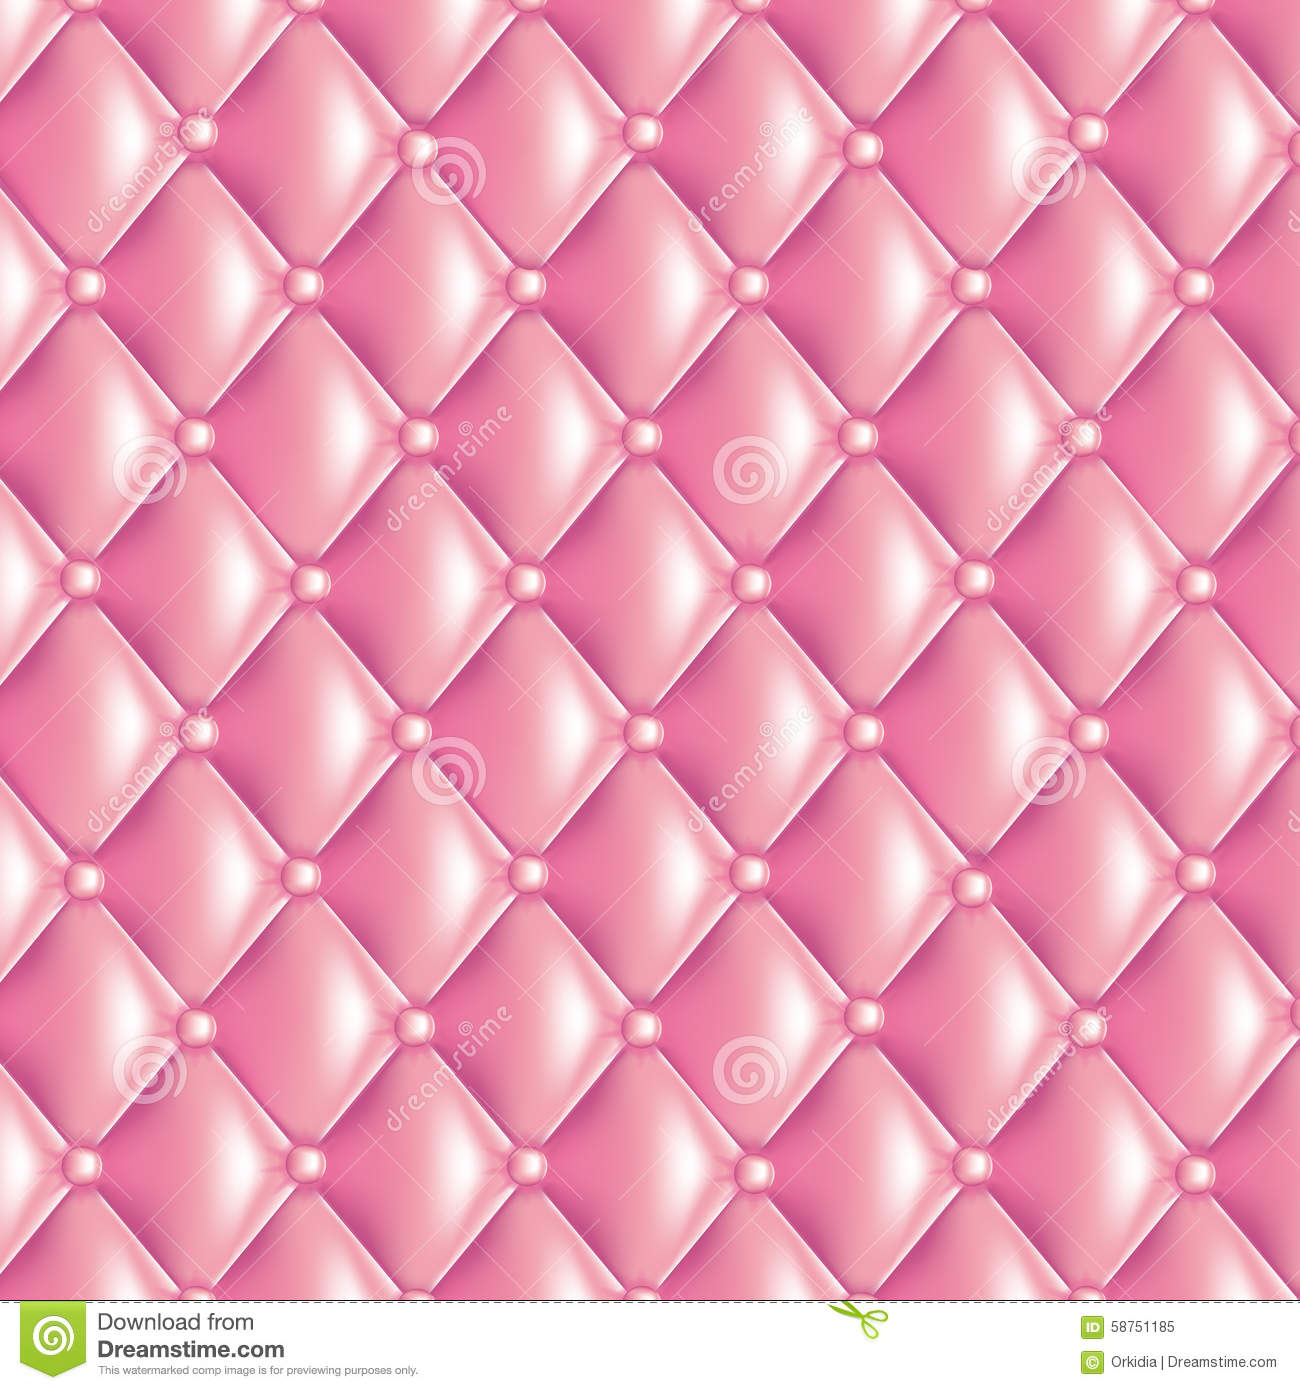 Pink quilted texture stock vector Image of velvet full  : pink quilted texture full vector 58751185 from www.dreamstime.com size 1300 x 1390 jpeg 182kB